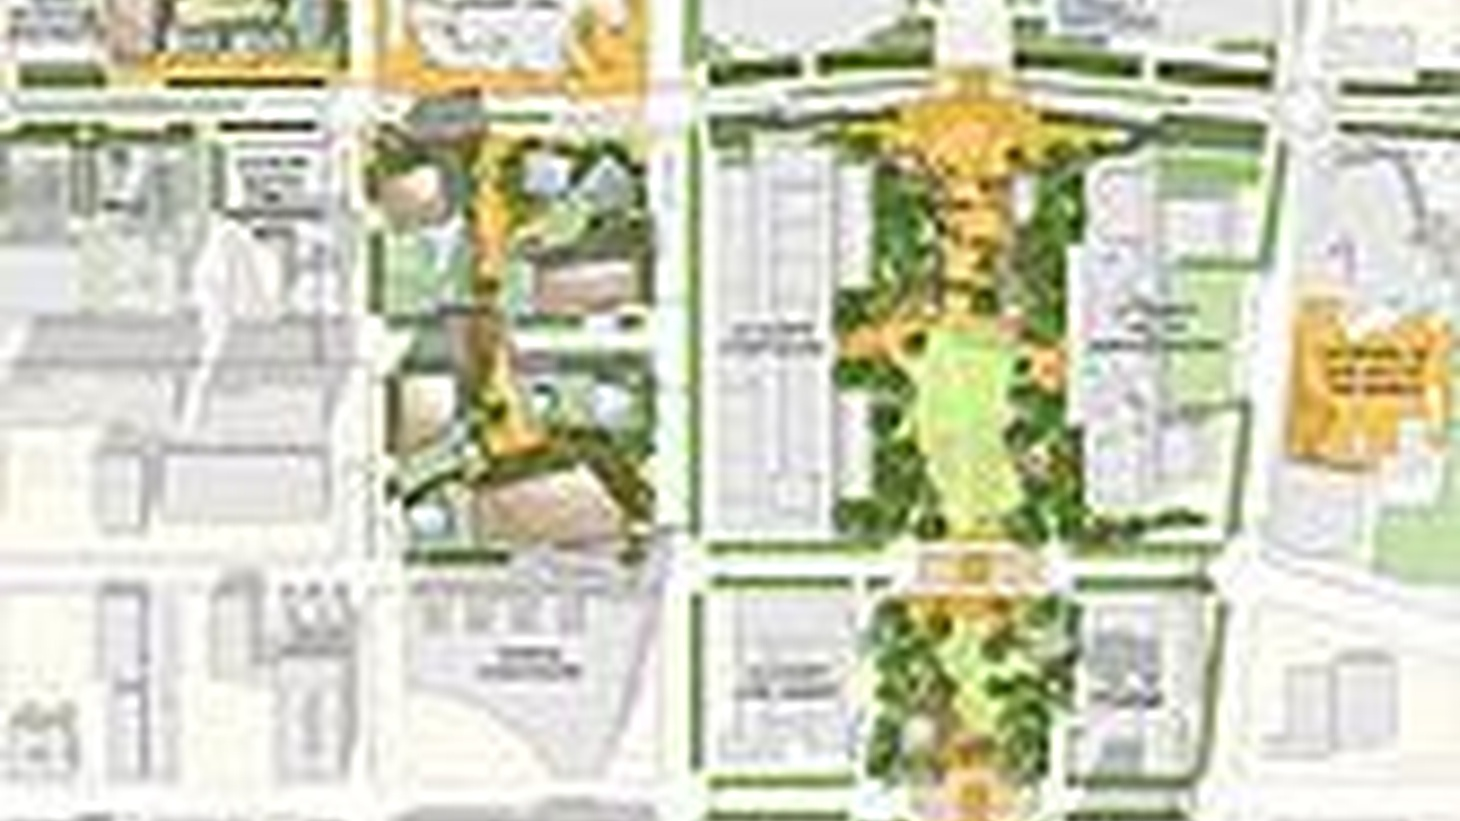 """Mayor Antonio Villariagosa is all in favor of spending $100 million in taxpayers' money to subsidize the Grand Avenue Projectin downtown LA, but County Supervisor Mike Antonovich says it couldturn into an """"endless subsidy."""" That issue, as well as the contributionof several acres ofpublic land, will be on tomorrow's agenda for the Los Angeles CityCouncil andthe Board of Supervisors. The project, partly designed by Frank Gehry,will be across the street from Gehry's iconic Disney Hall.The project's total value is $2 billion. Why does the public have tocome up with $100 million? We hear the pros and cons from LA Timescolumnist Steve Lopez and others."""